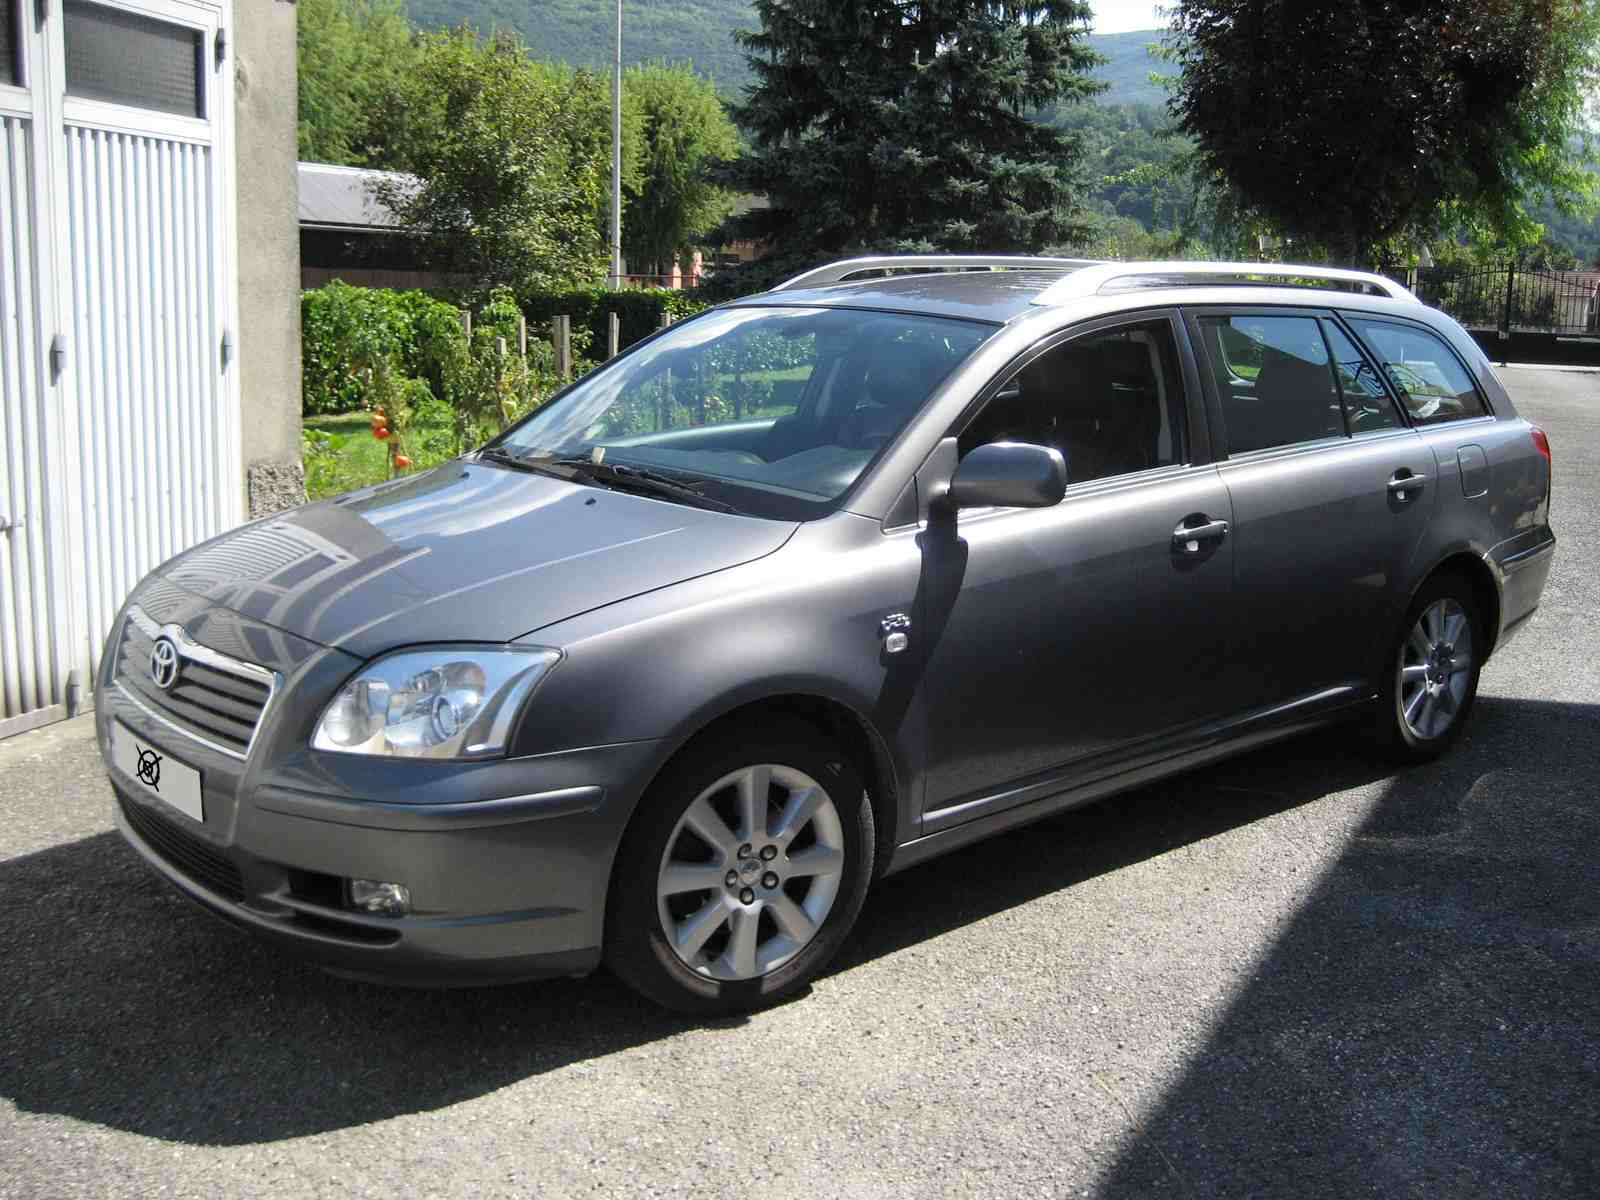 toyota avensis  zzt250  zzt251  azt250  azt251  cdt250 series  workshop service repair manual toyota avensis 2006 online manual toyota avensis 2006 manual